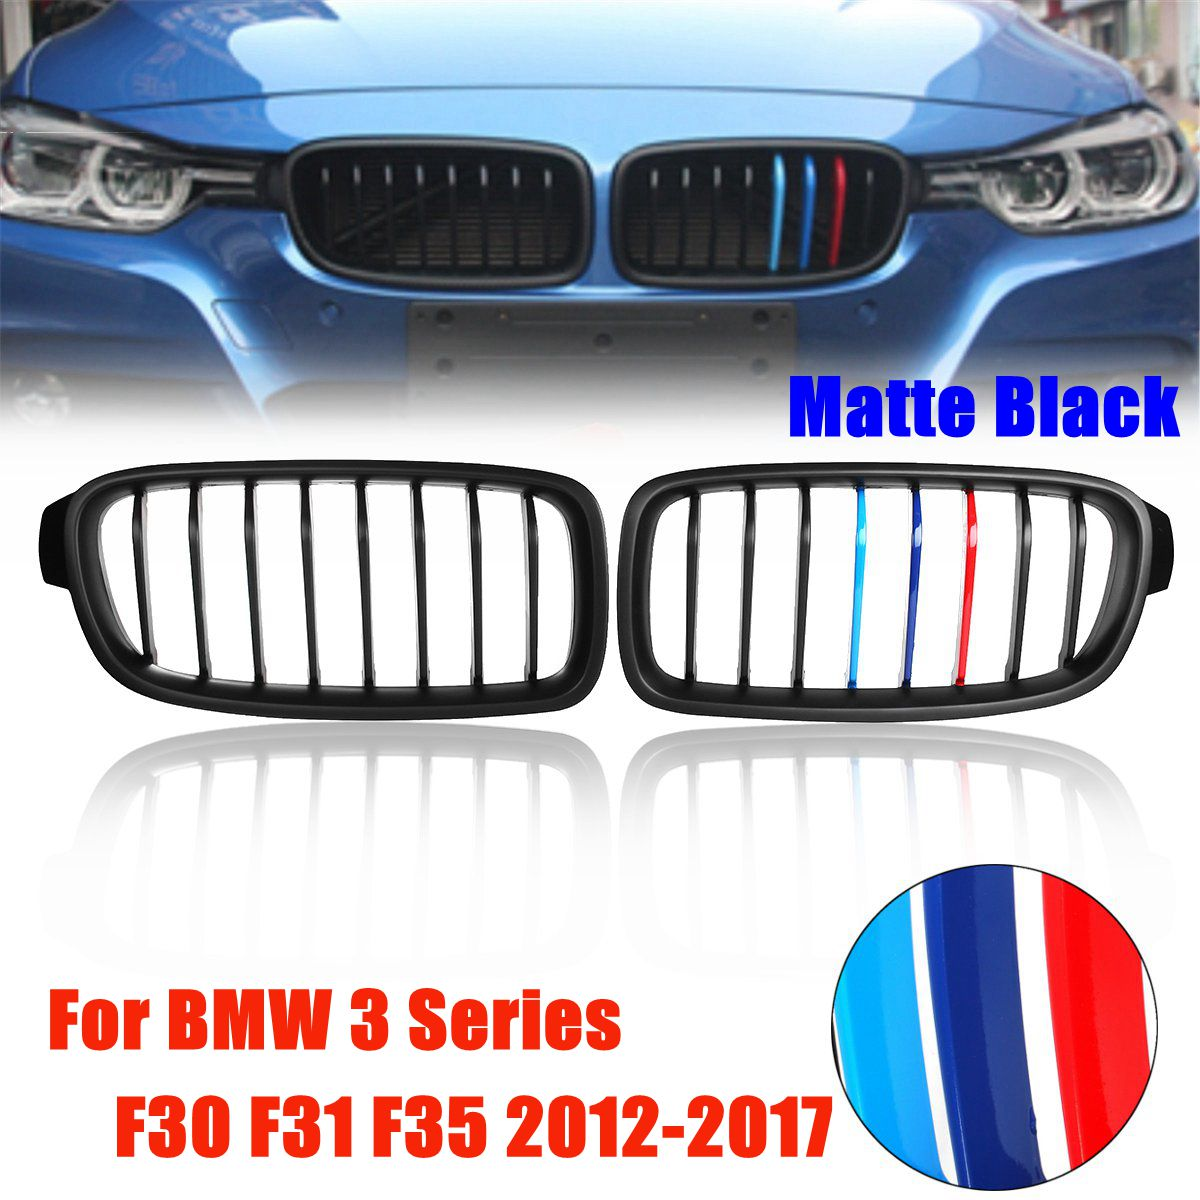 1 Pair 3Colors  for BMW 3 Series F30 F31 F35 2012-2017 for Replacement Racing Grill Matte Black MColor Kidney Front Grill Grille1 Pair 3Colors  for BMW 3 Series F30 F31 F35 2012-2017 for Replacement Racing Grill Matte Black MColor Kidney Front Grill Grille